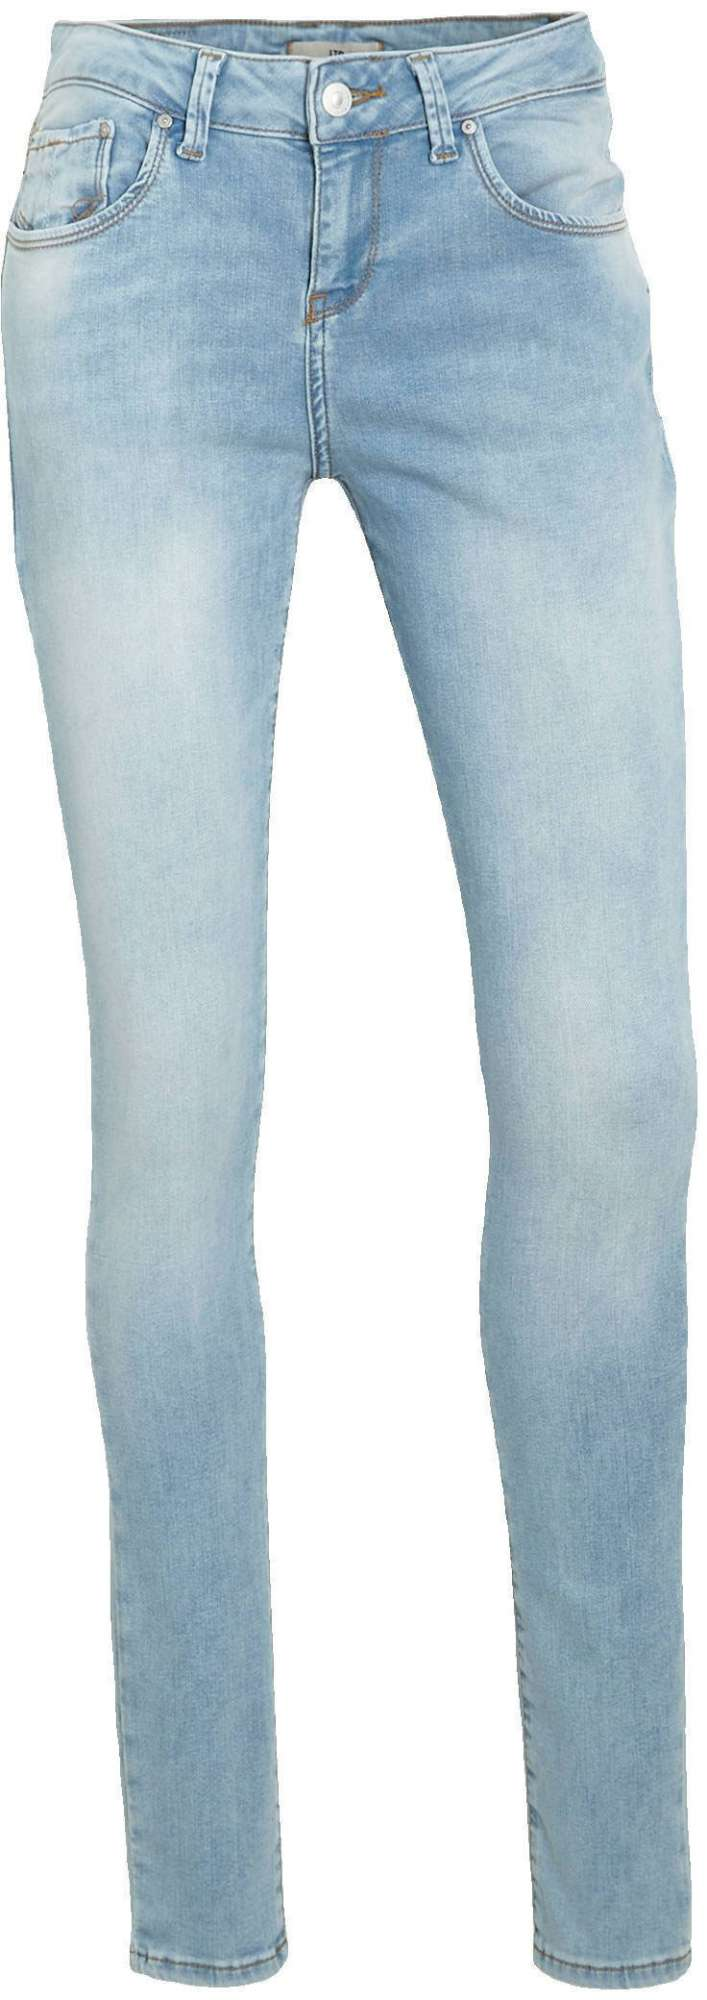 Daisy leilani light blue wash